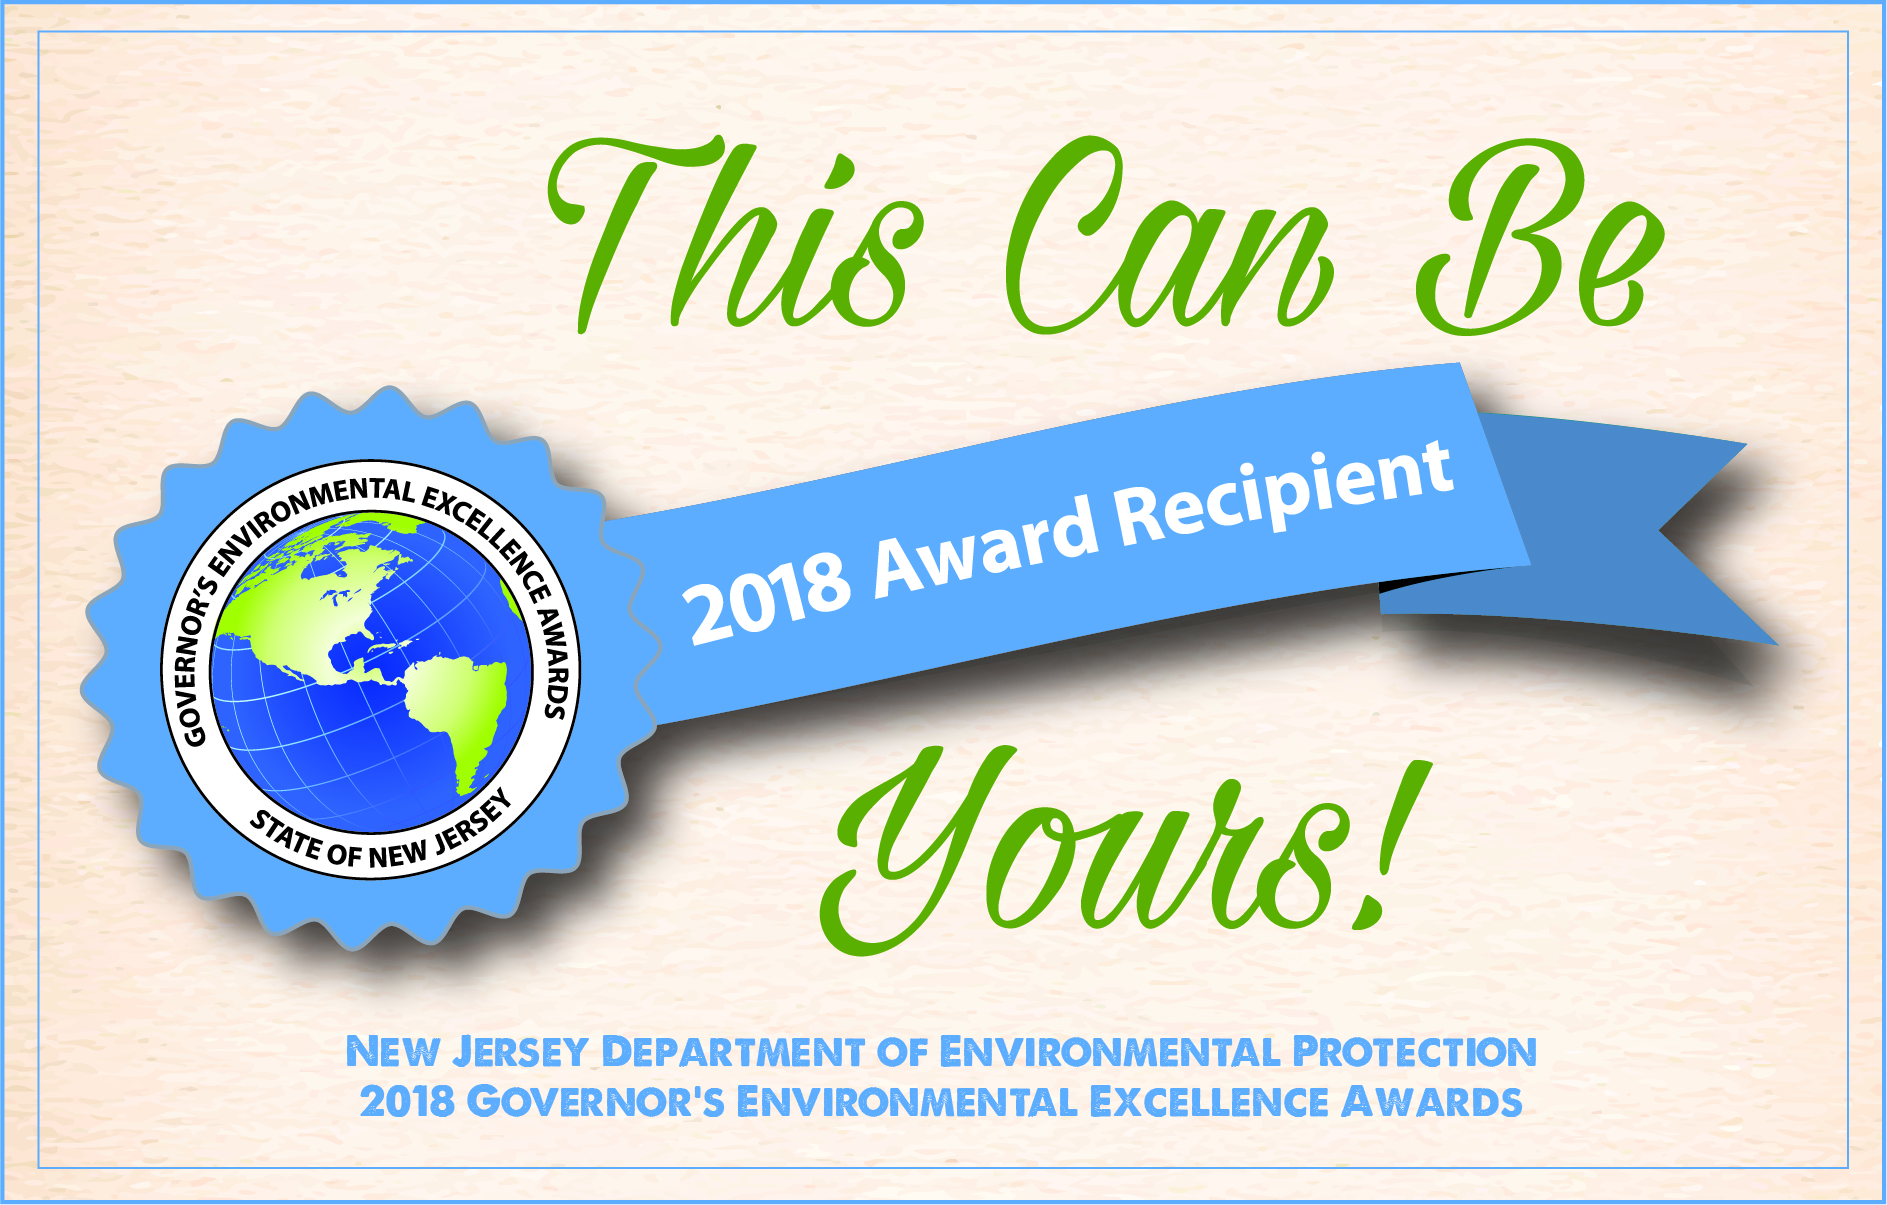 Governor's Environmental Excellence Awards